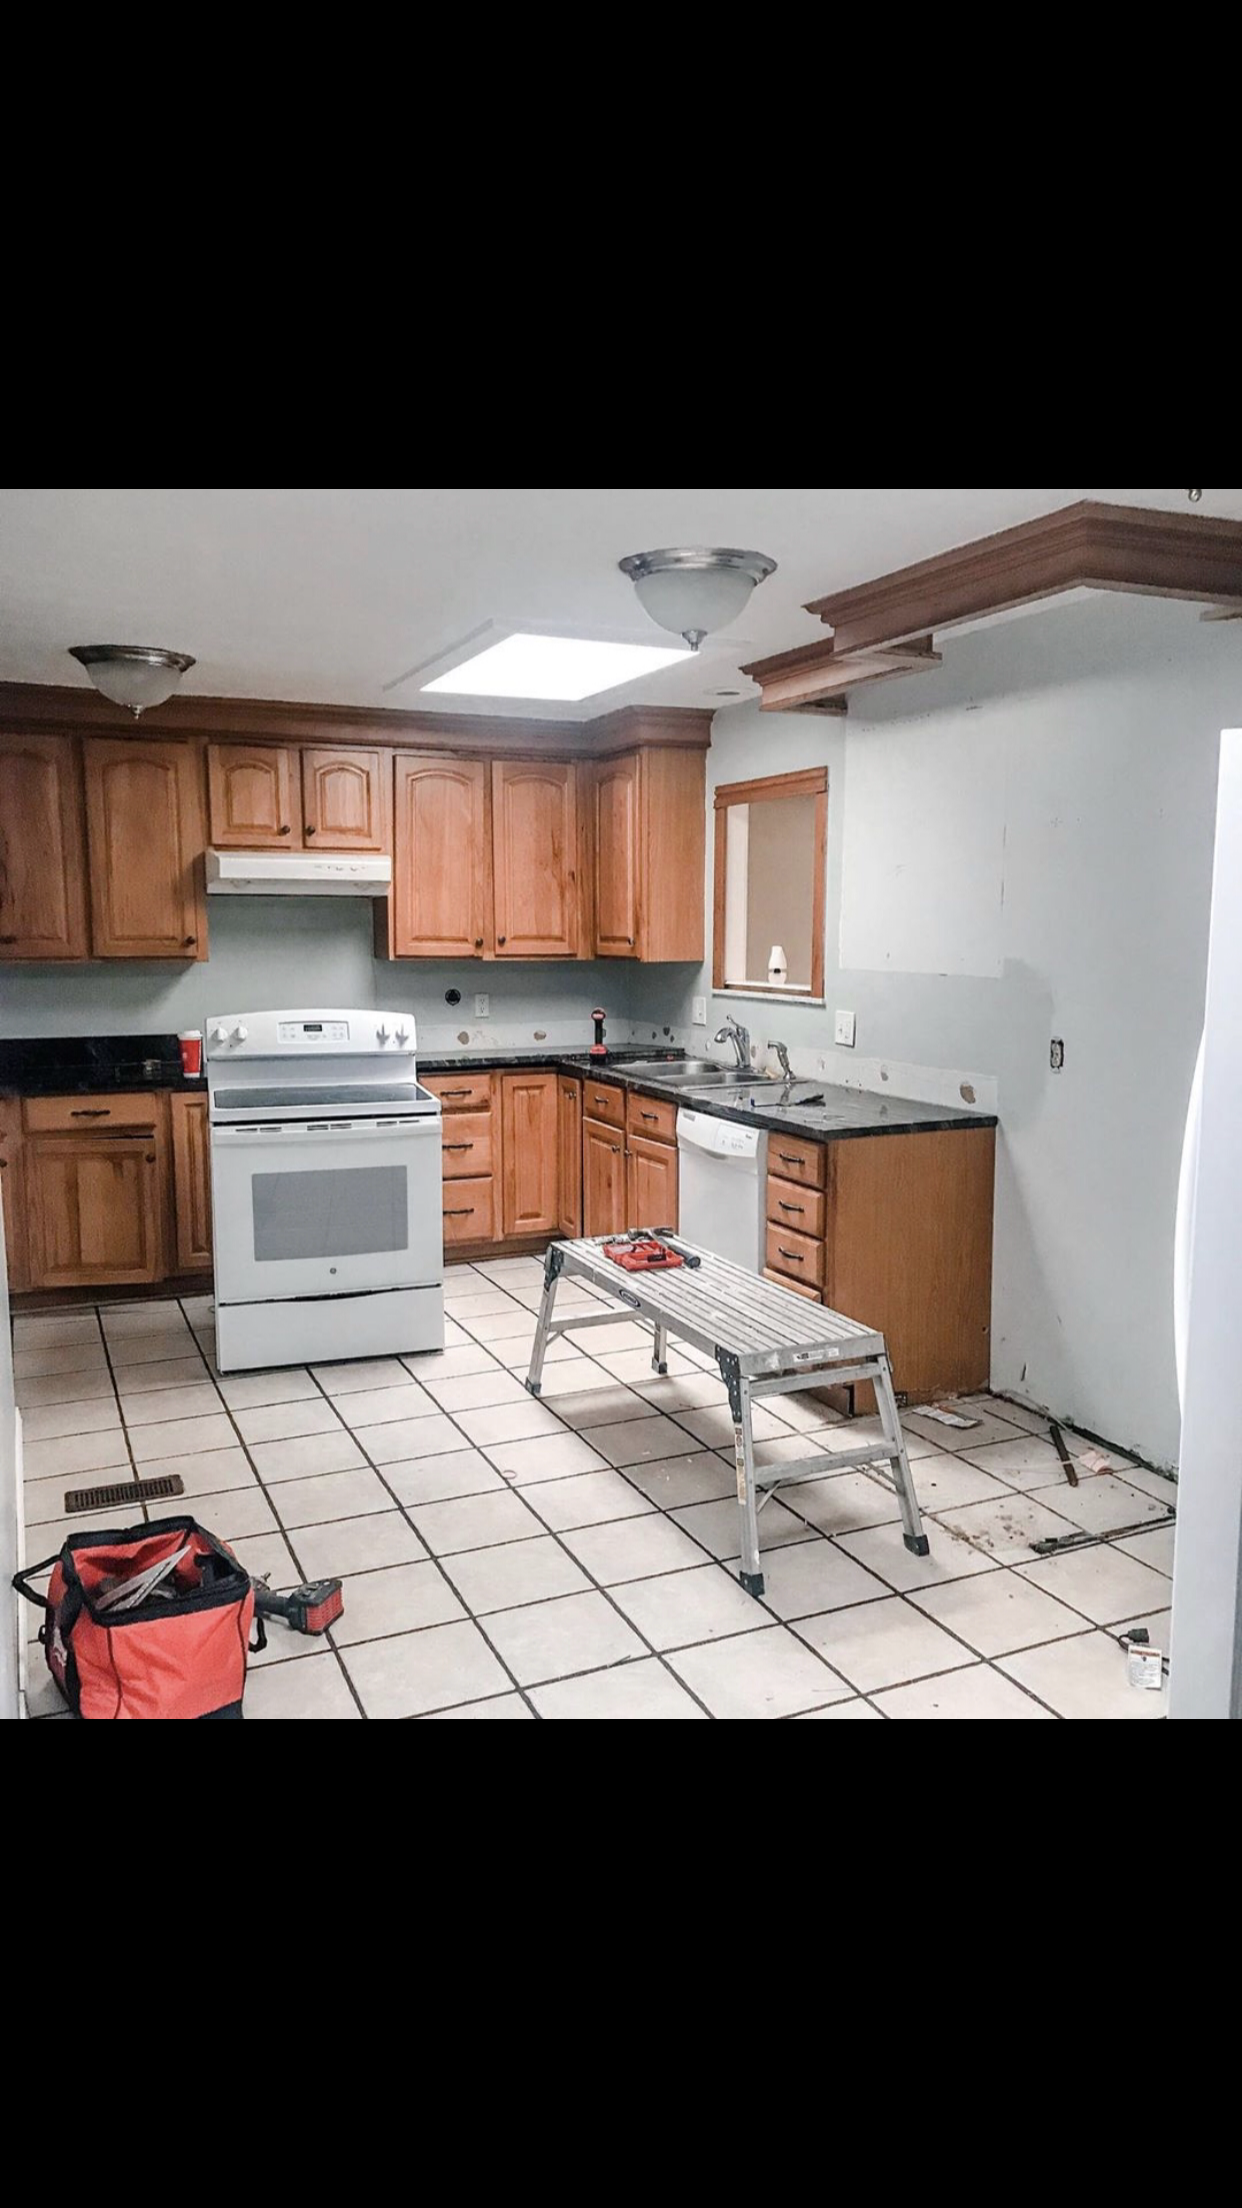 Here is what the kitchen looked like before.